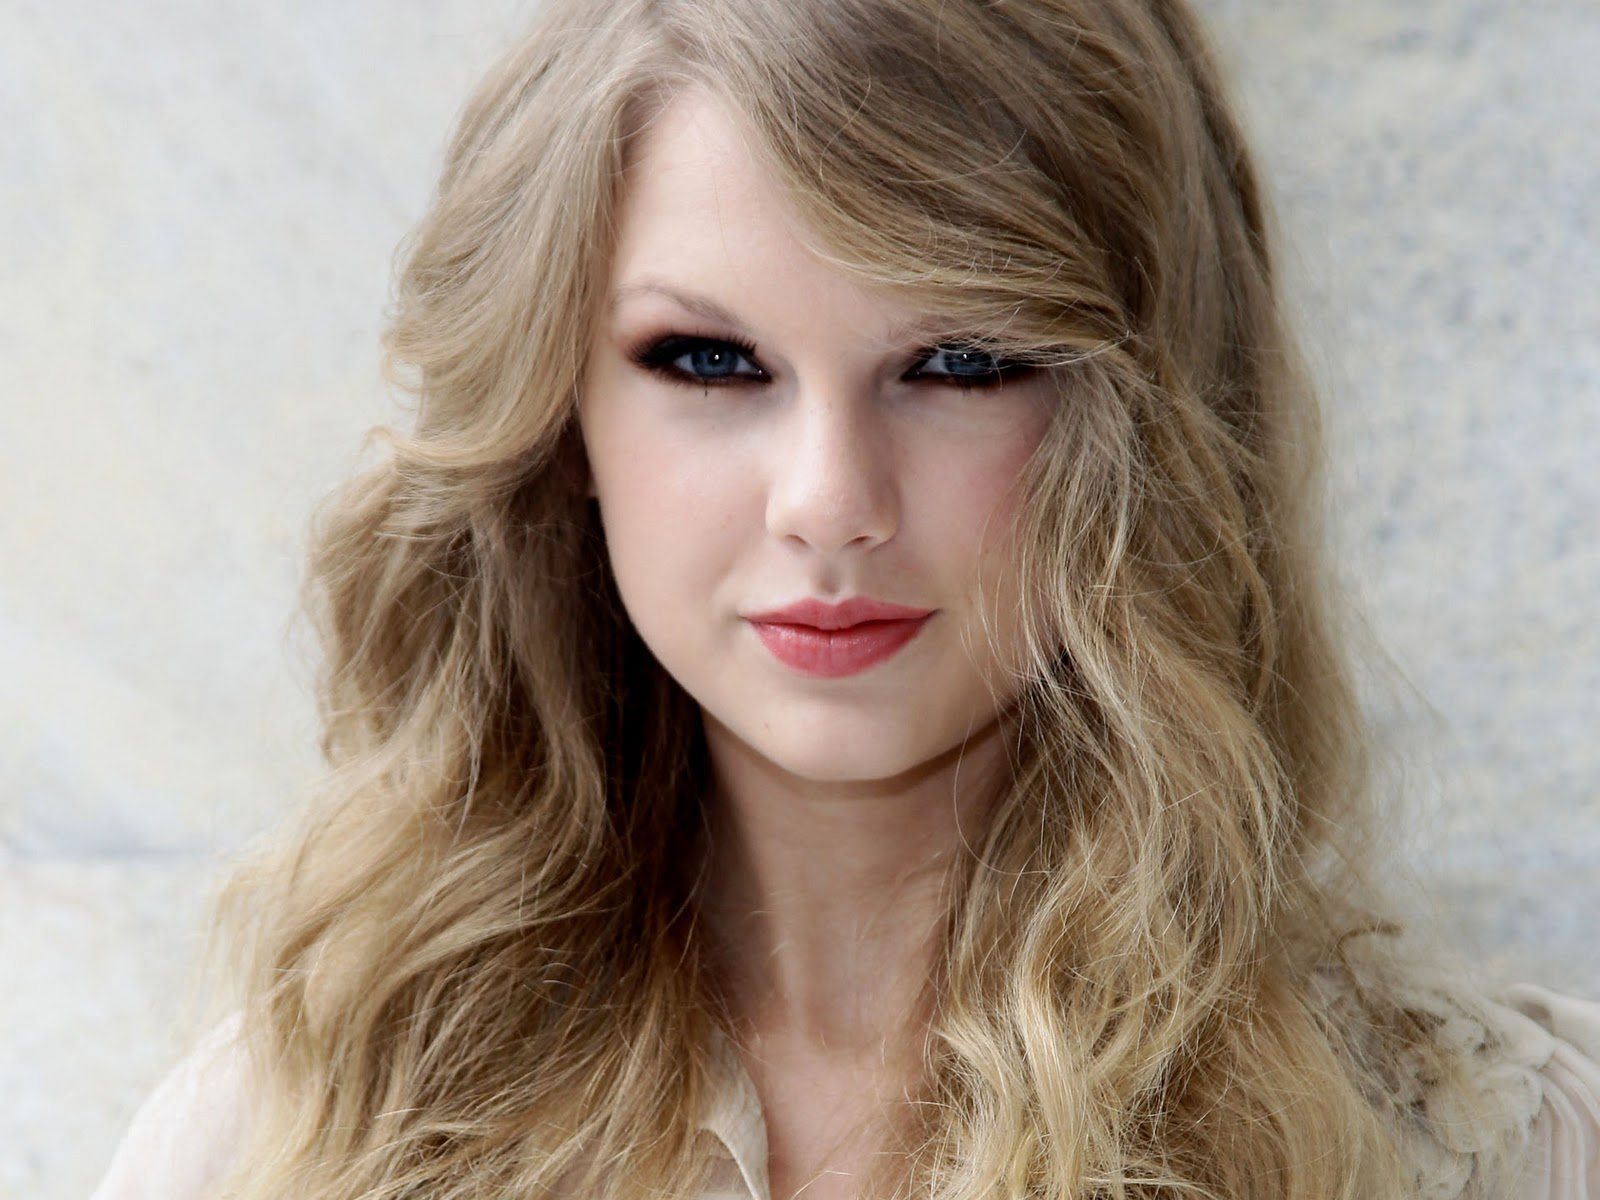 Taylor Swift Latest Hd Wallpapers Xs Wallpapers